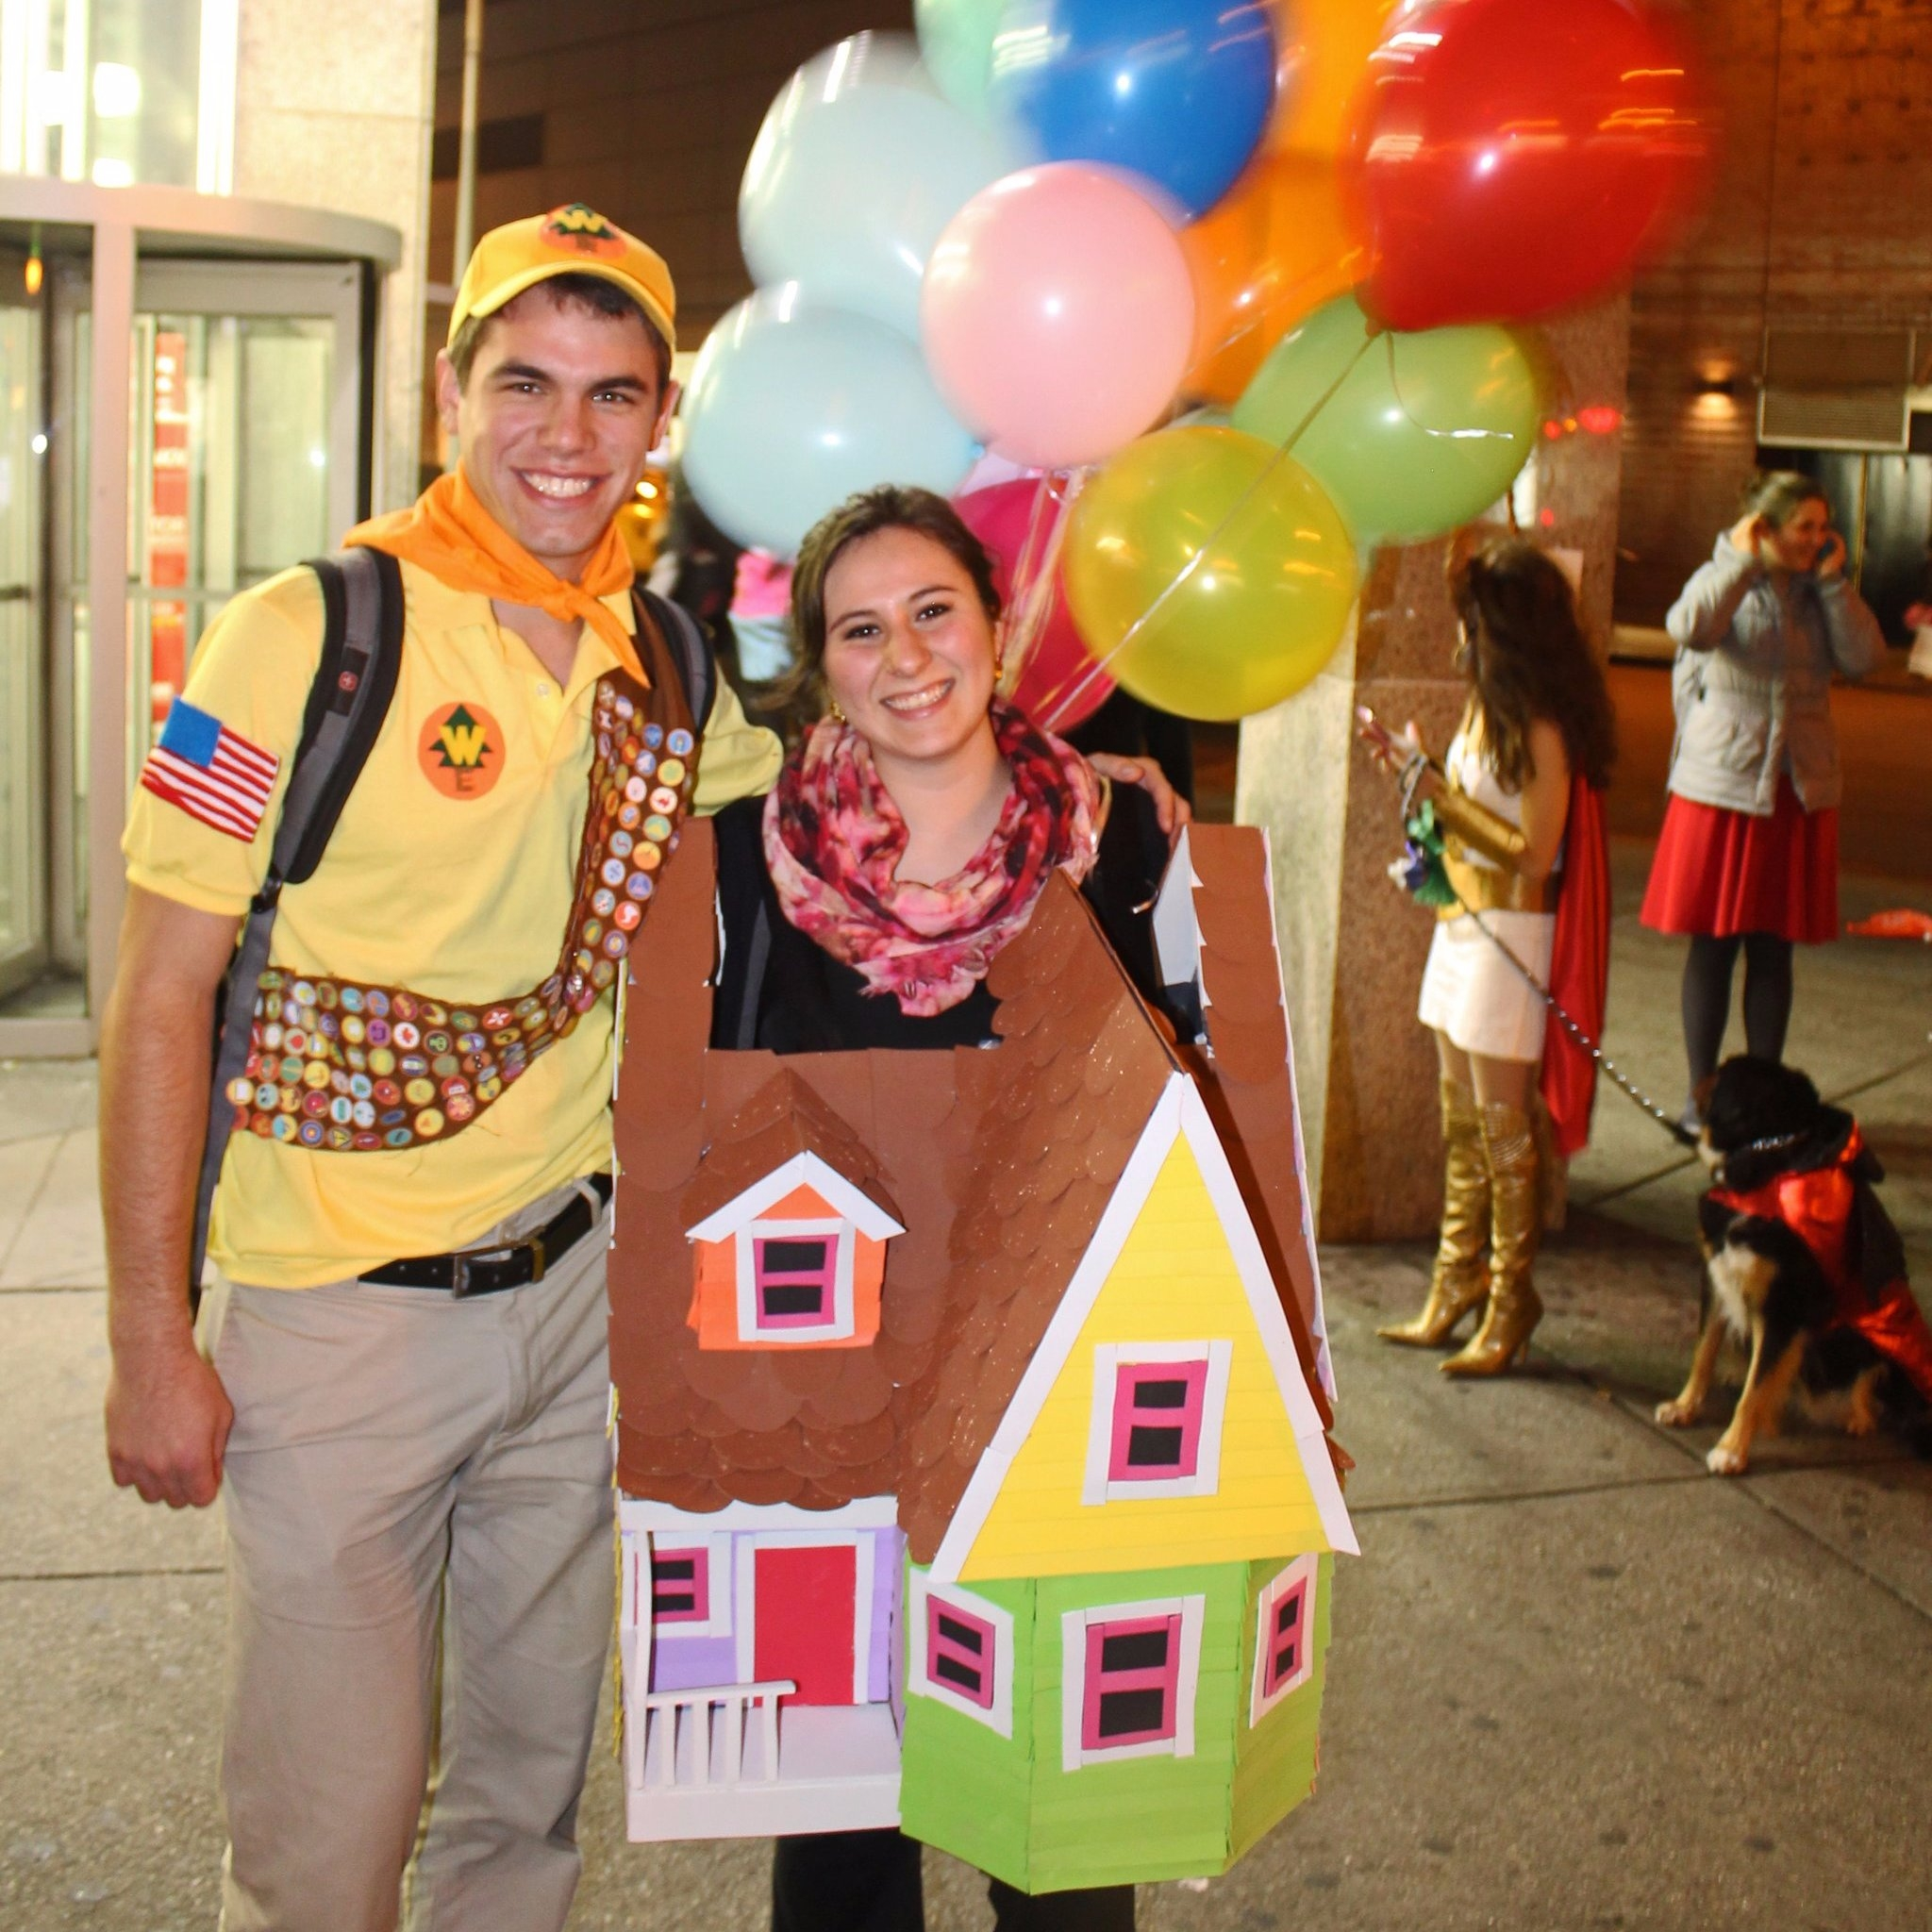 10 Cute Cheap Costume Ideas For Couples cheap diy couples halloween costumes popsugar smart living 26 2020